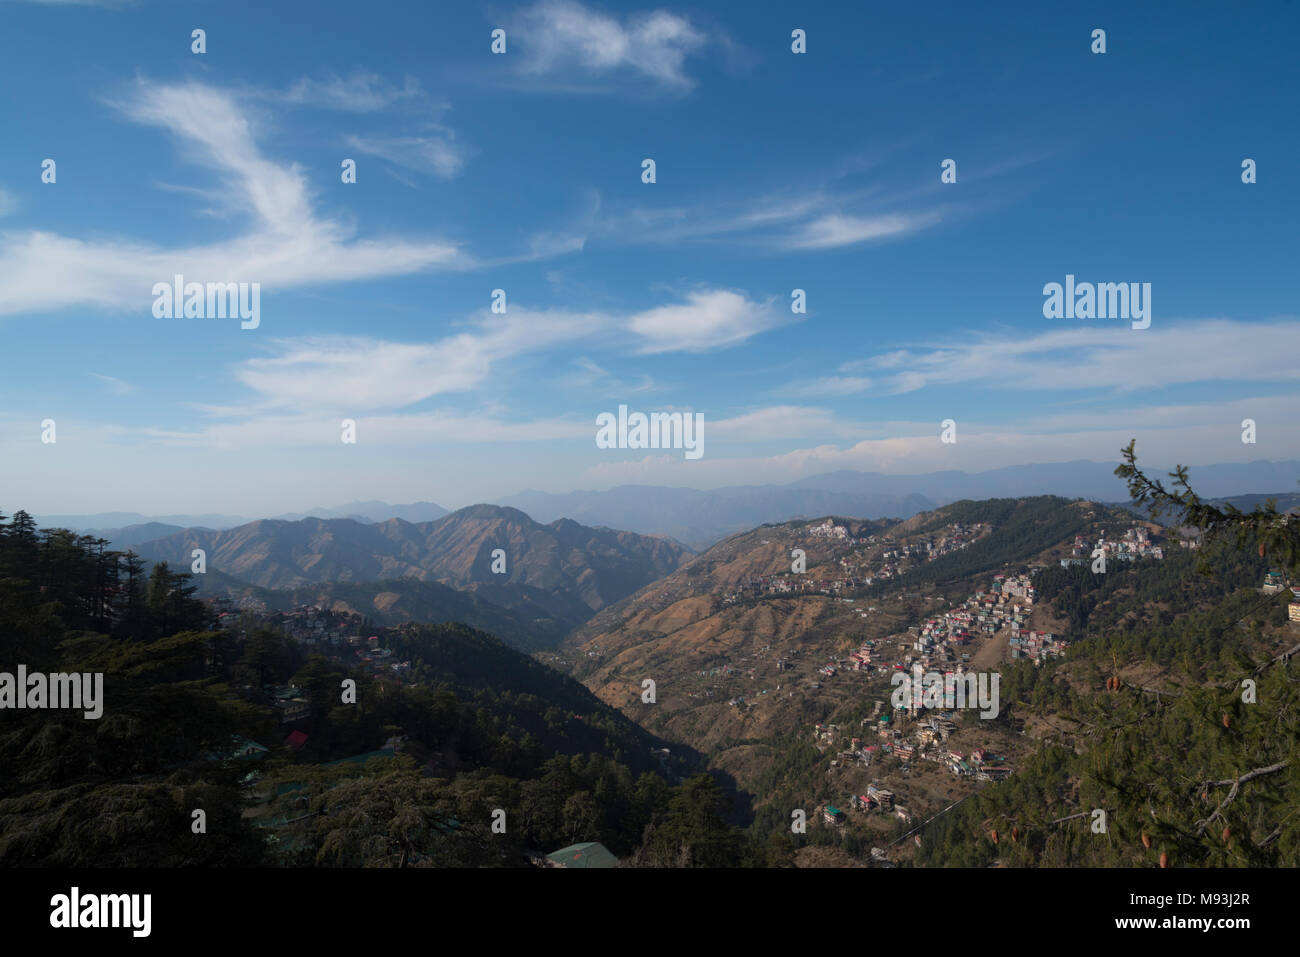 Scenic beautiful mountain landscape valley and town nature with blue sky and clouds in Shimla to Kalka in Himachal Pradesh, North India, India, Asia - Stock Image